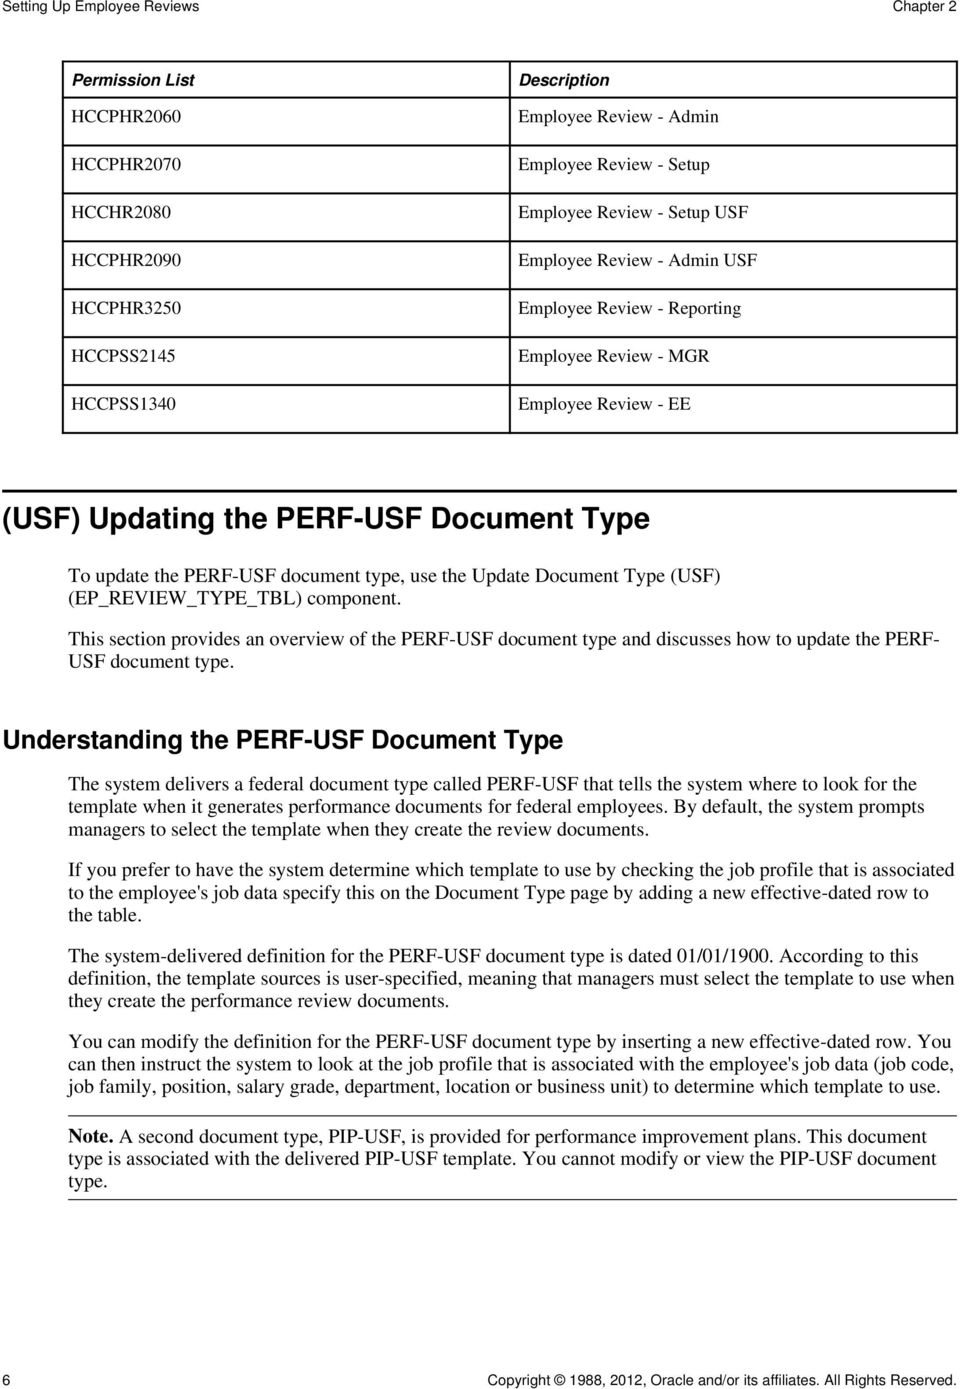 use the Update Document Type (USF) (EP_REVIEW_TYPE_TBL) component. This section provides an overview of the PERF-USF document type and discusses how to update the PERF- USF document type.